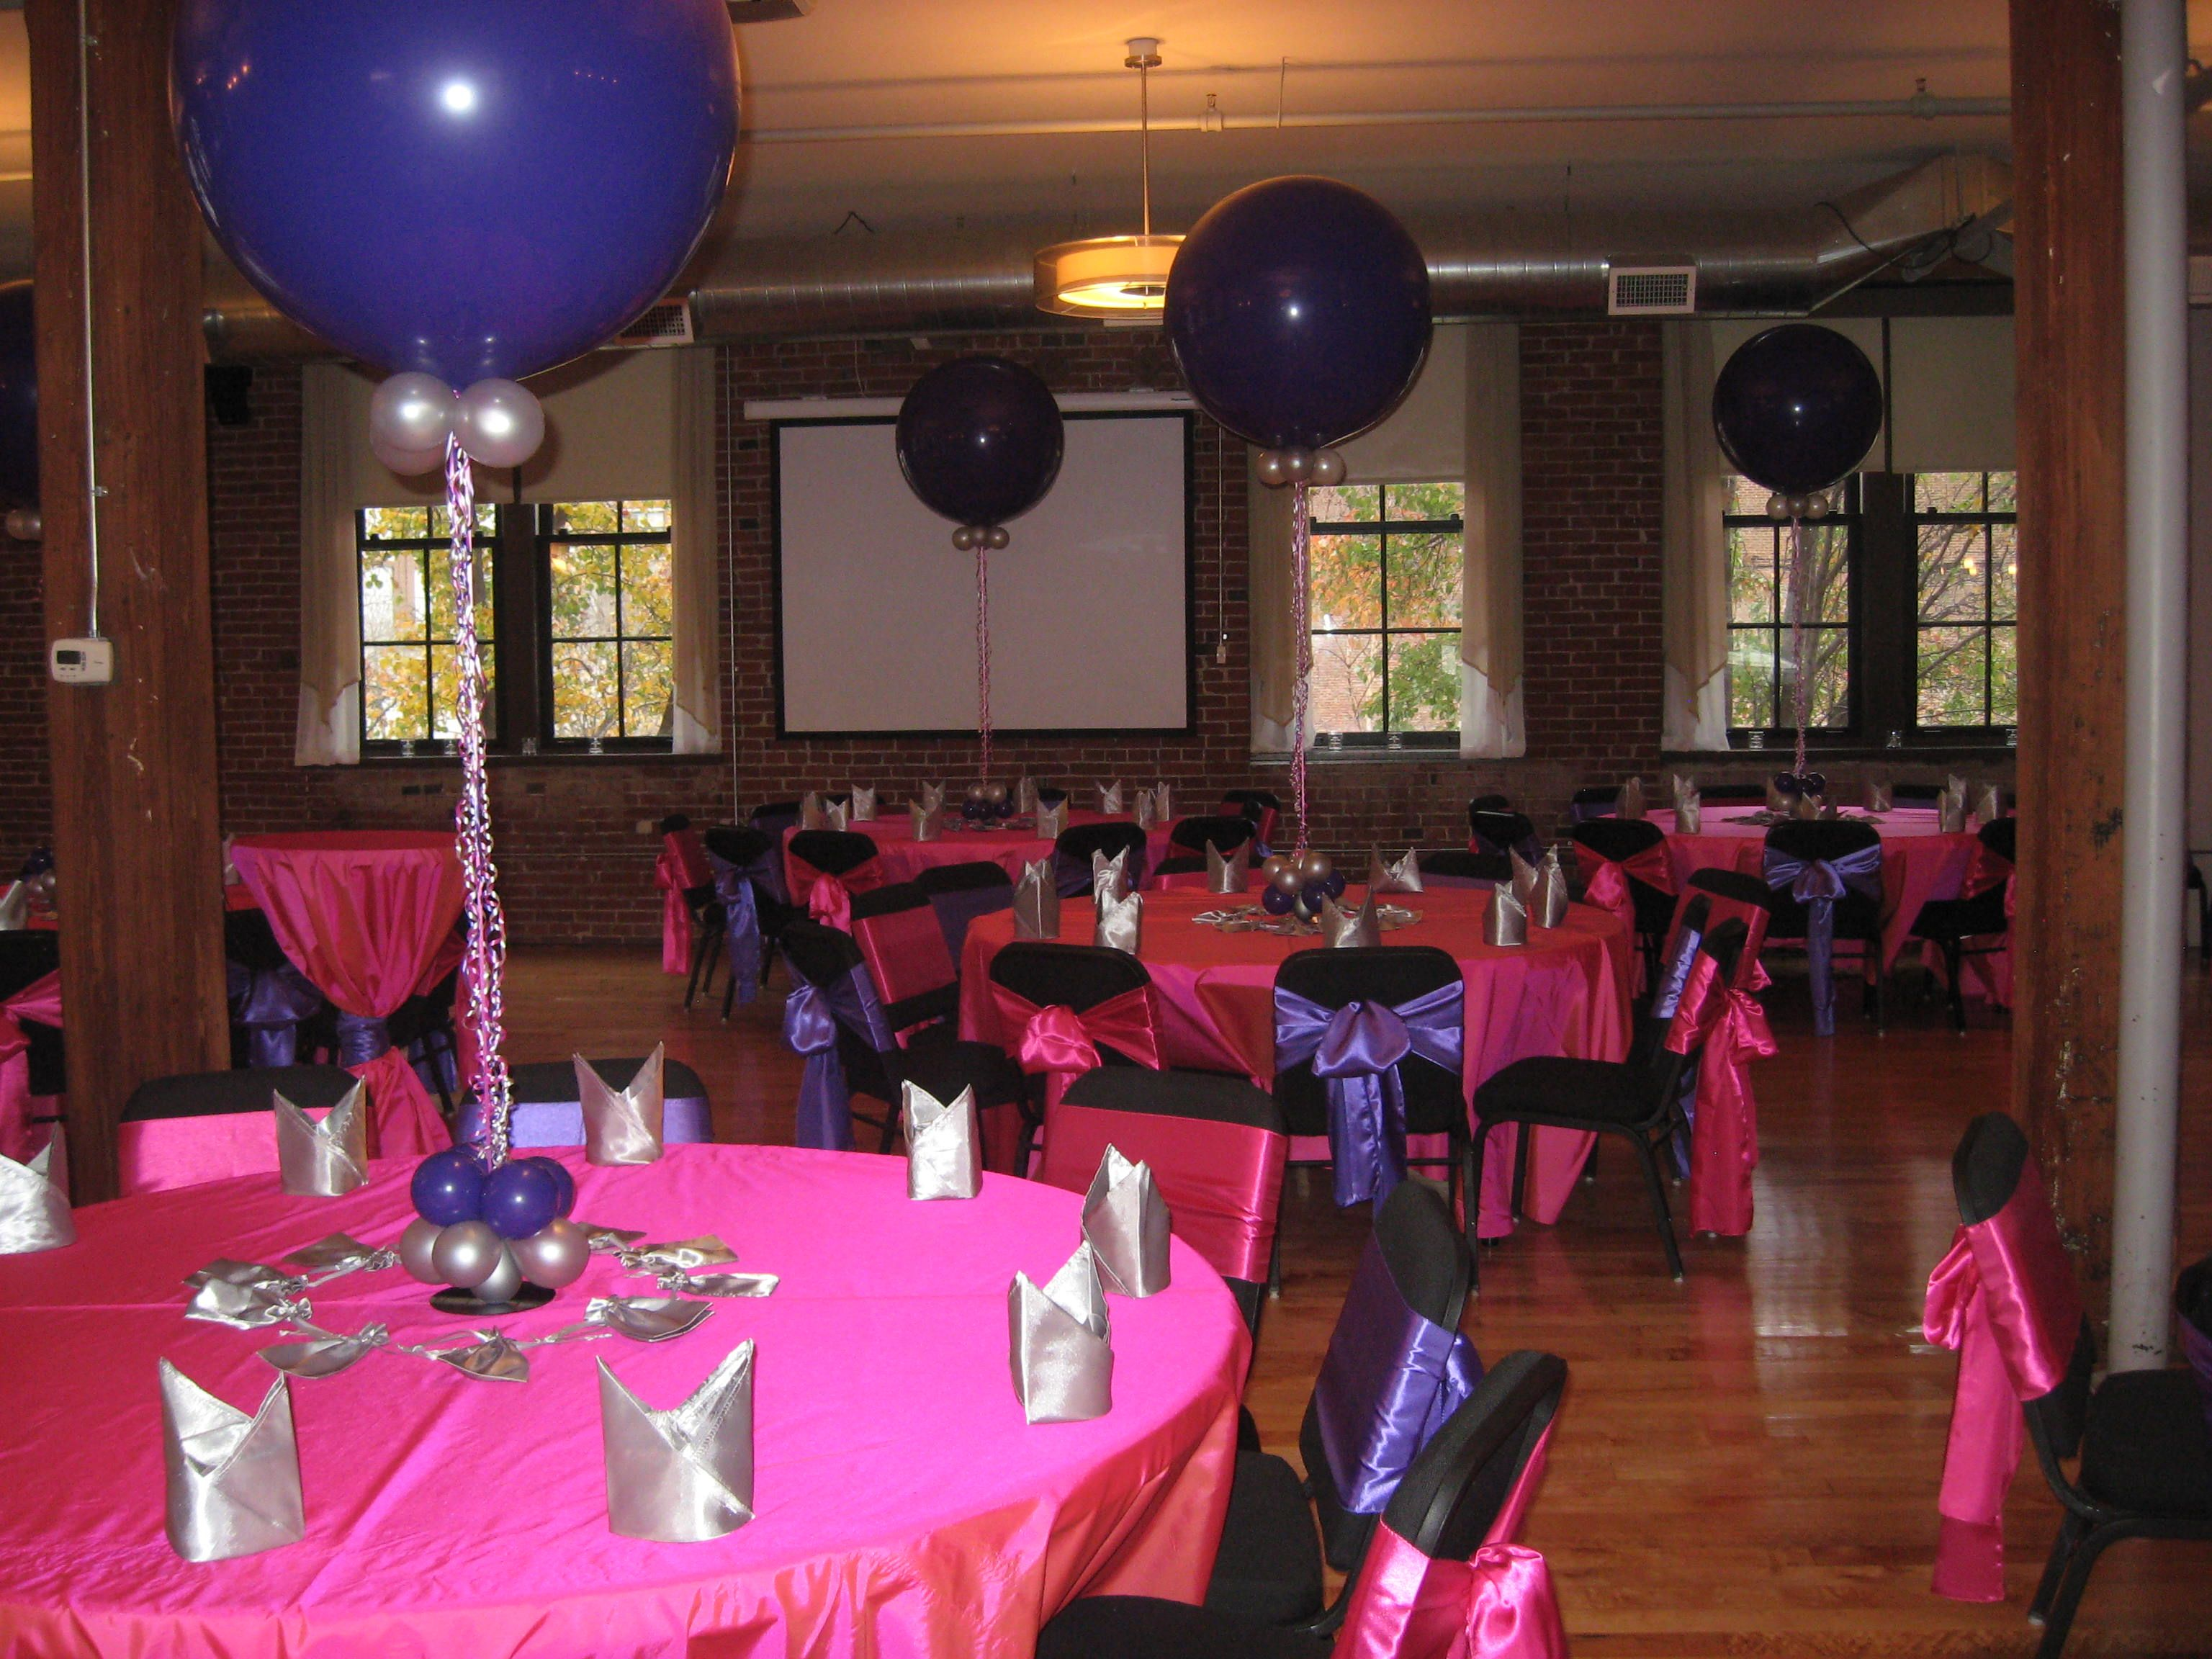 Sweet 16 balloon decorations birthday party http for 16th birthday party decoration ideas